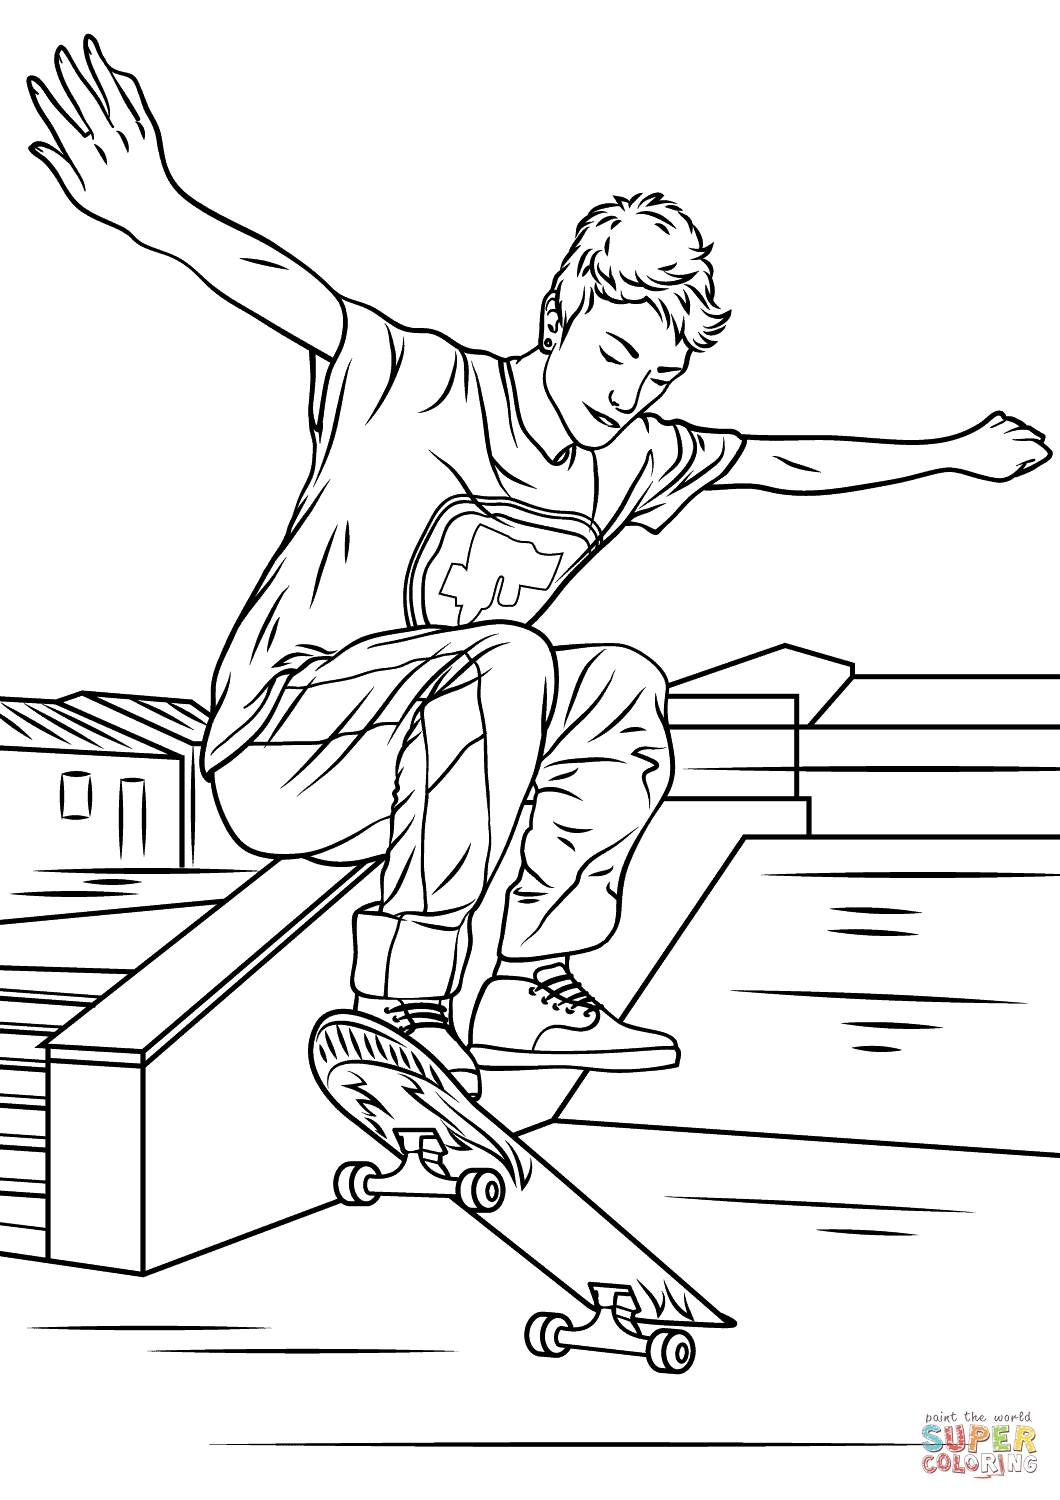 24 Skateboard Coloring Page Pictures | FREE COLORING PAGES - Part 2